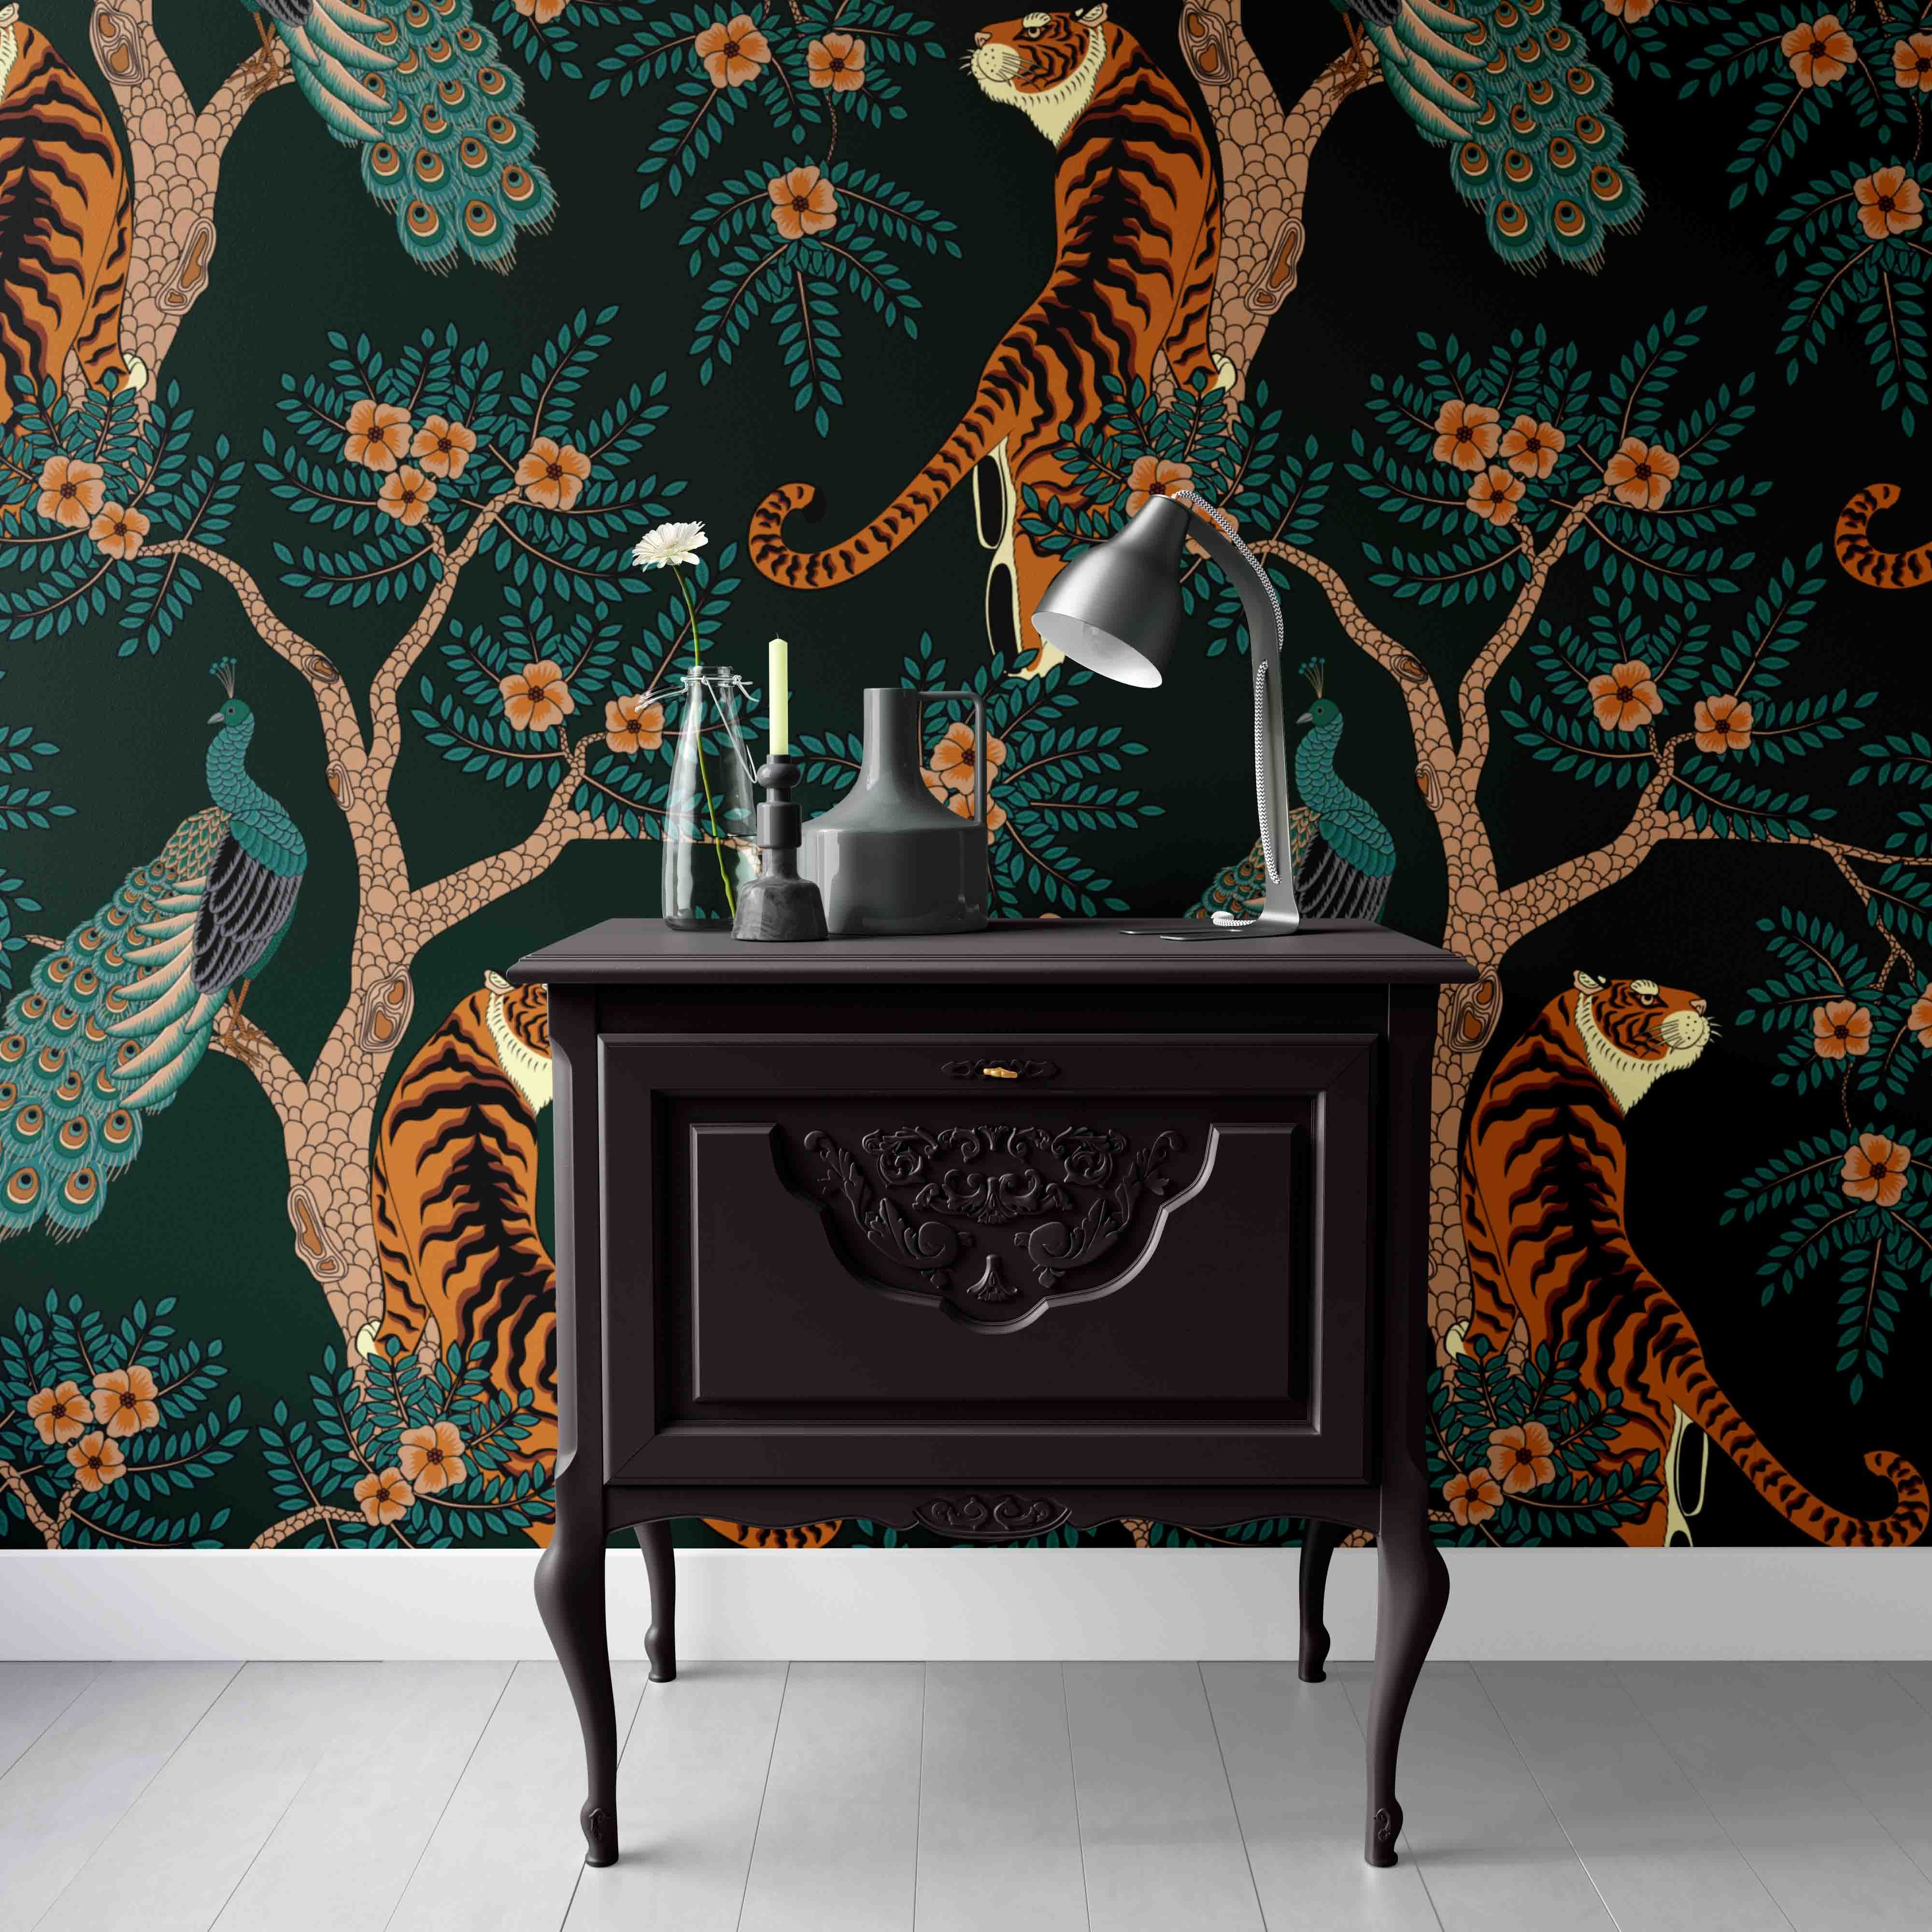 Pin on Wallpapers by Green Planet Print